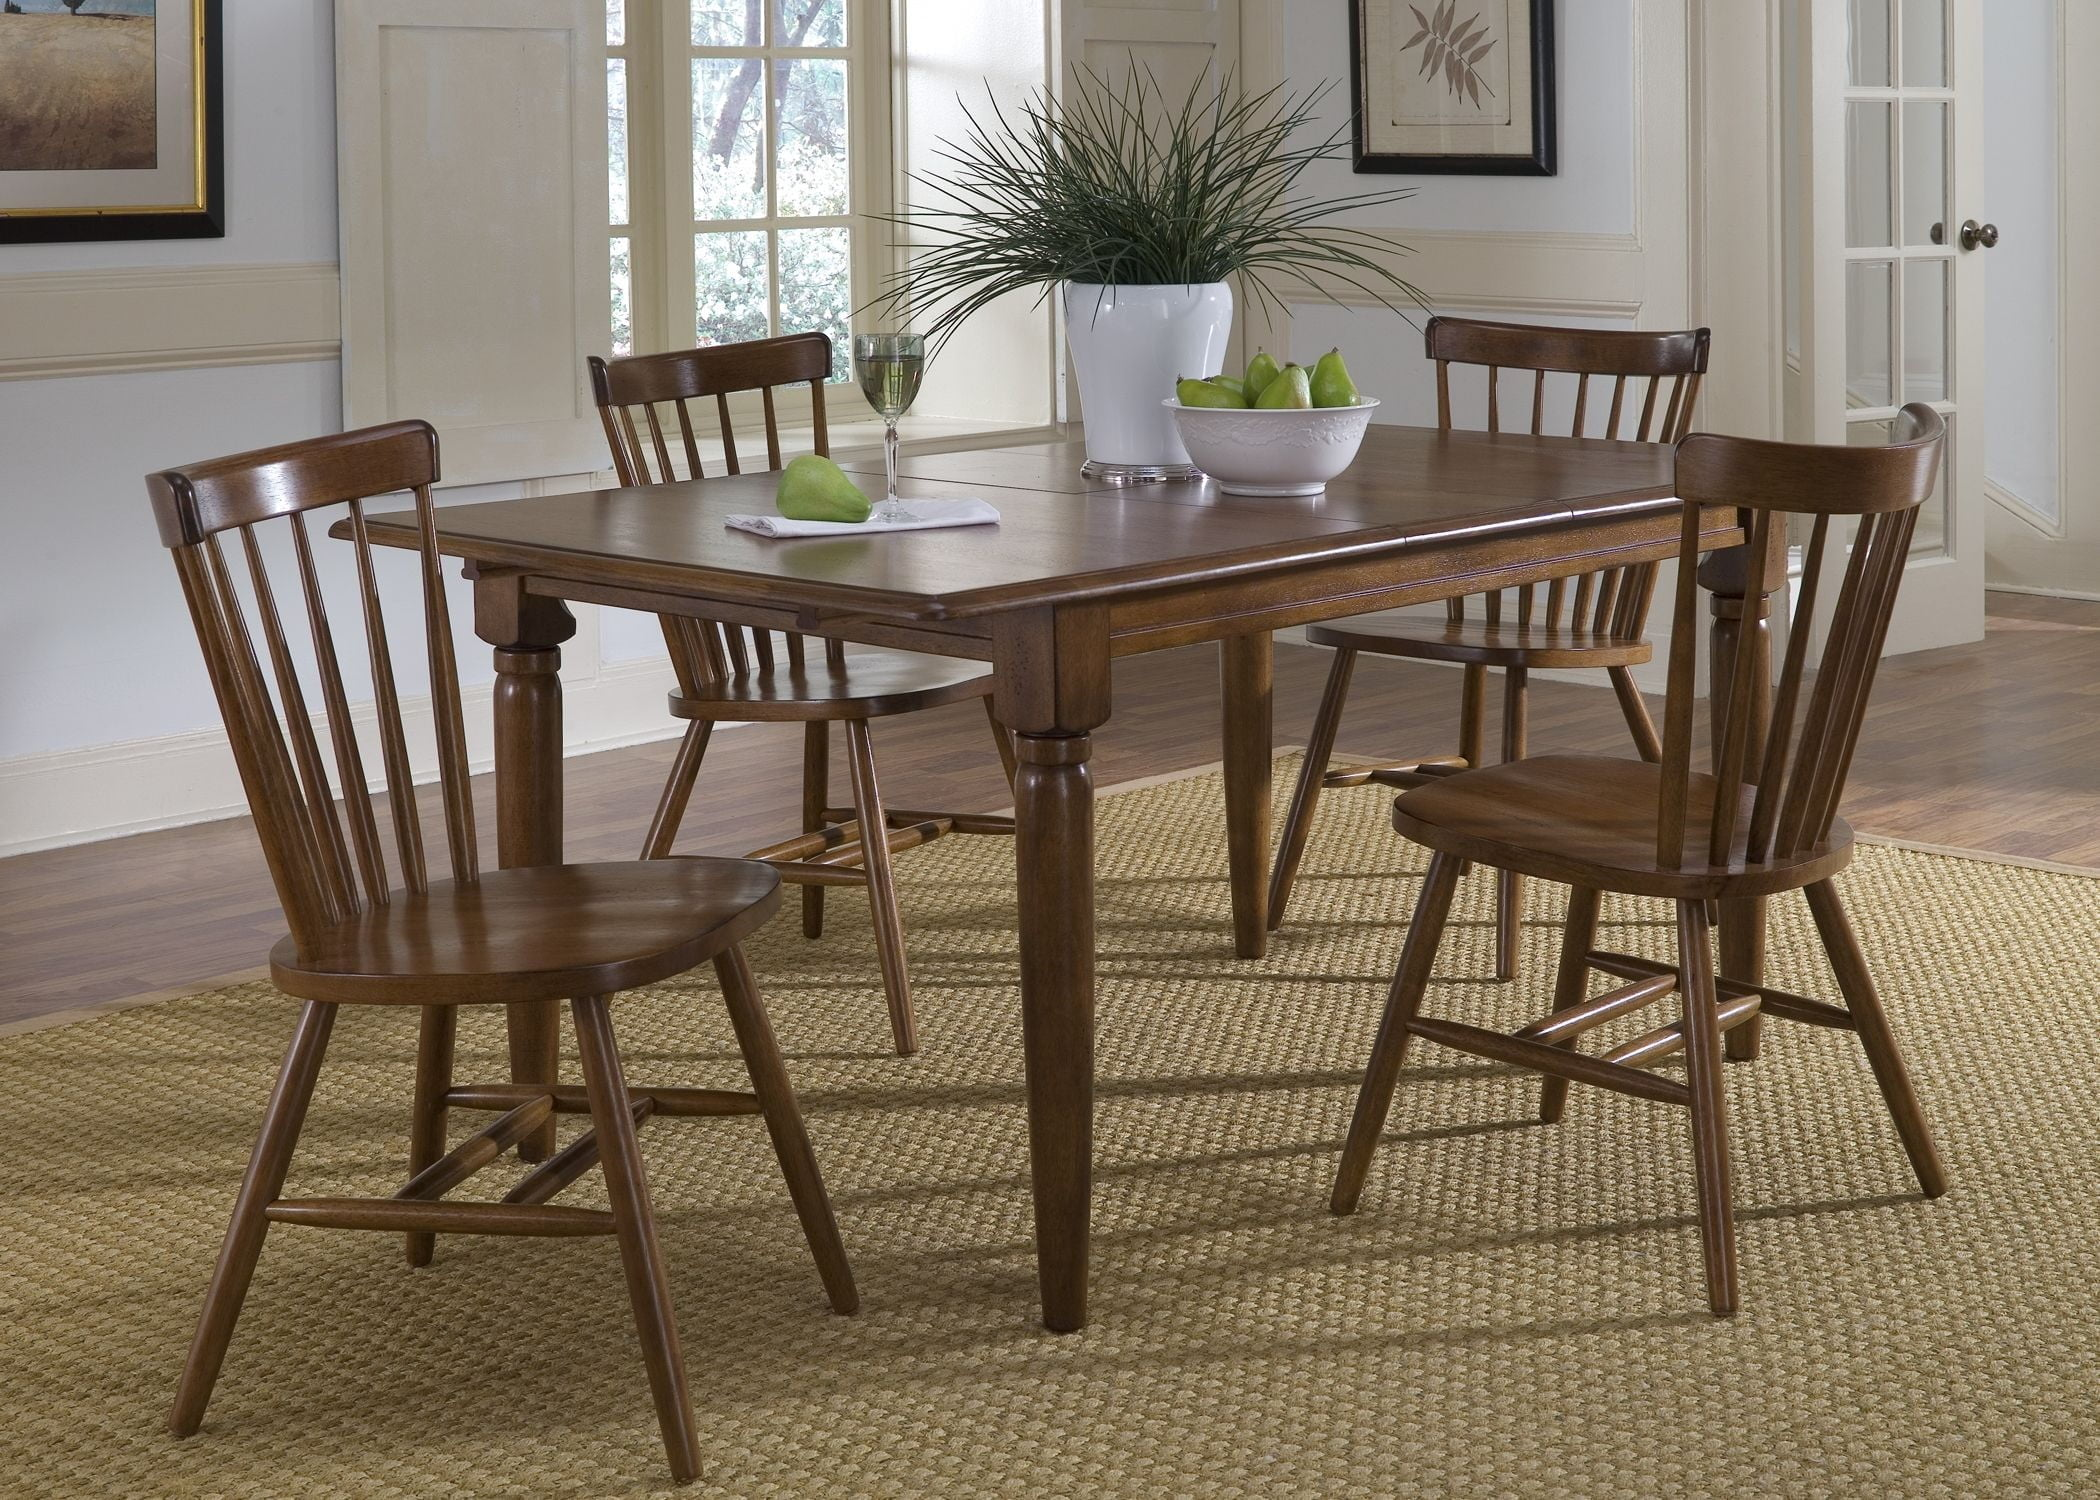 Creations ii tobacco butterfly leaf dining room set from for Dining room leaf